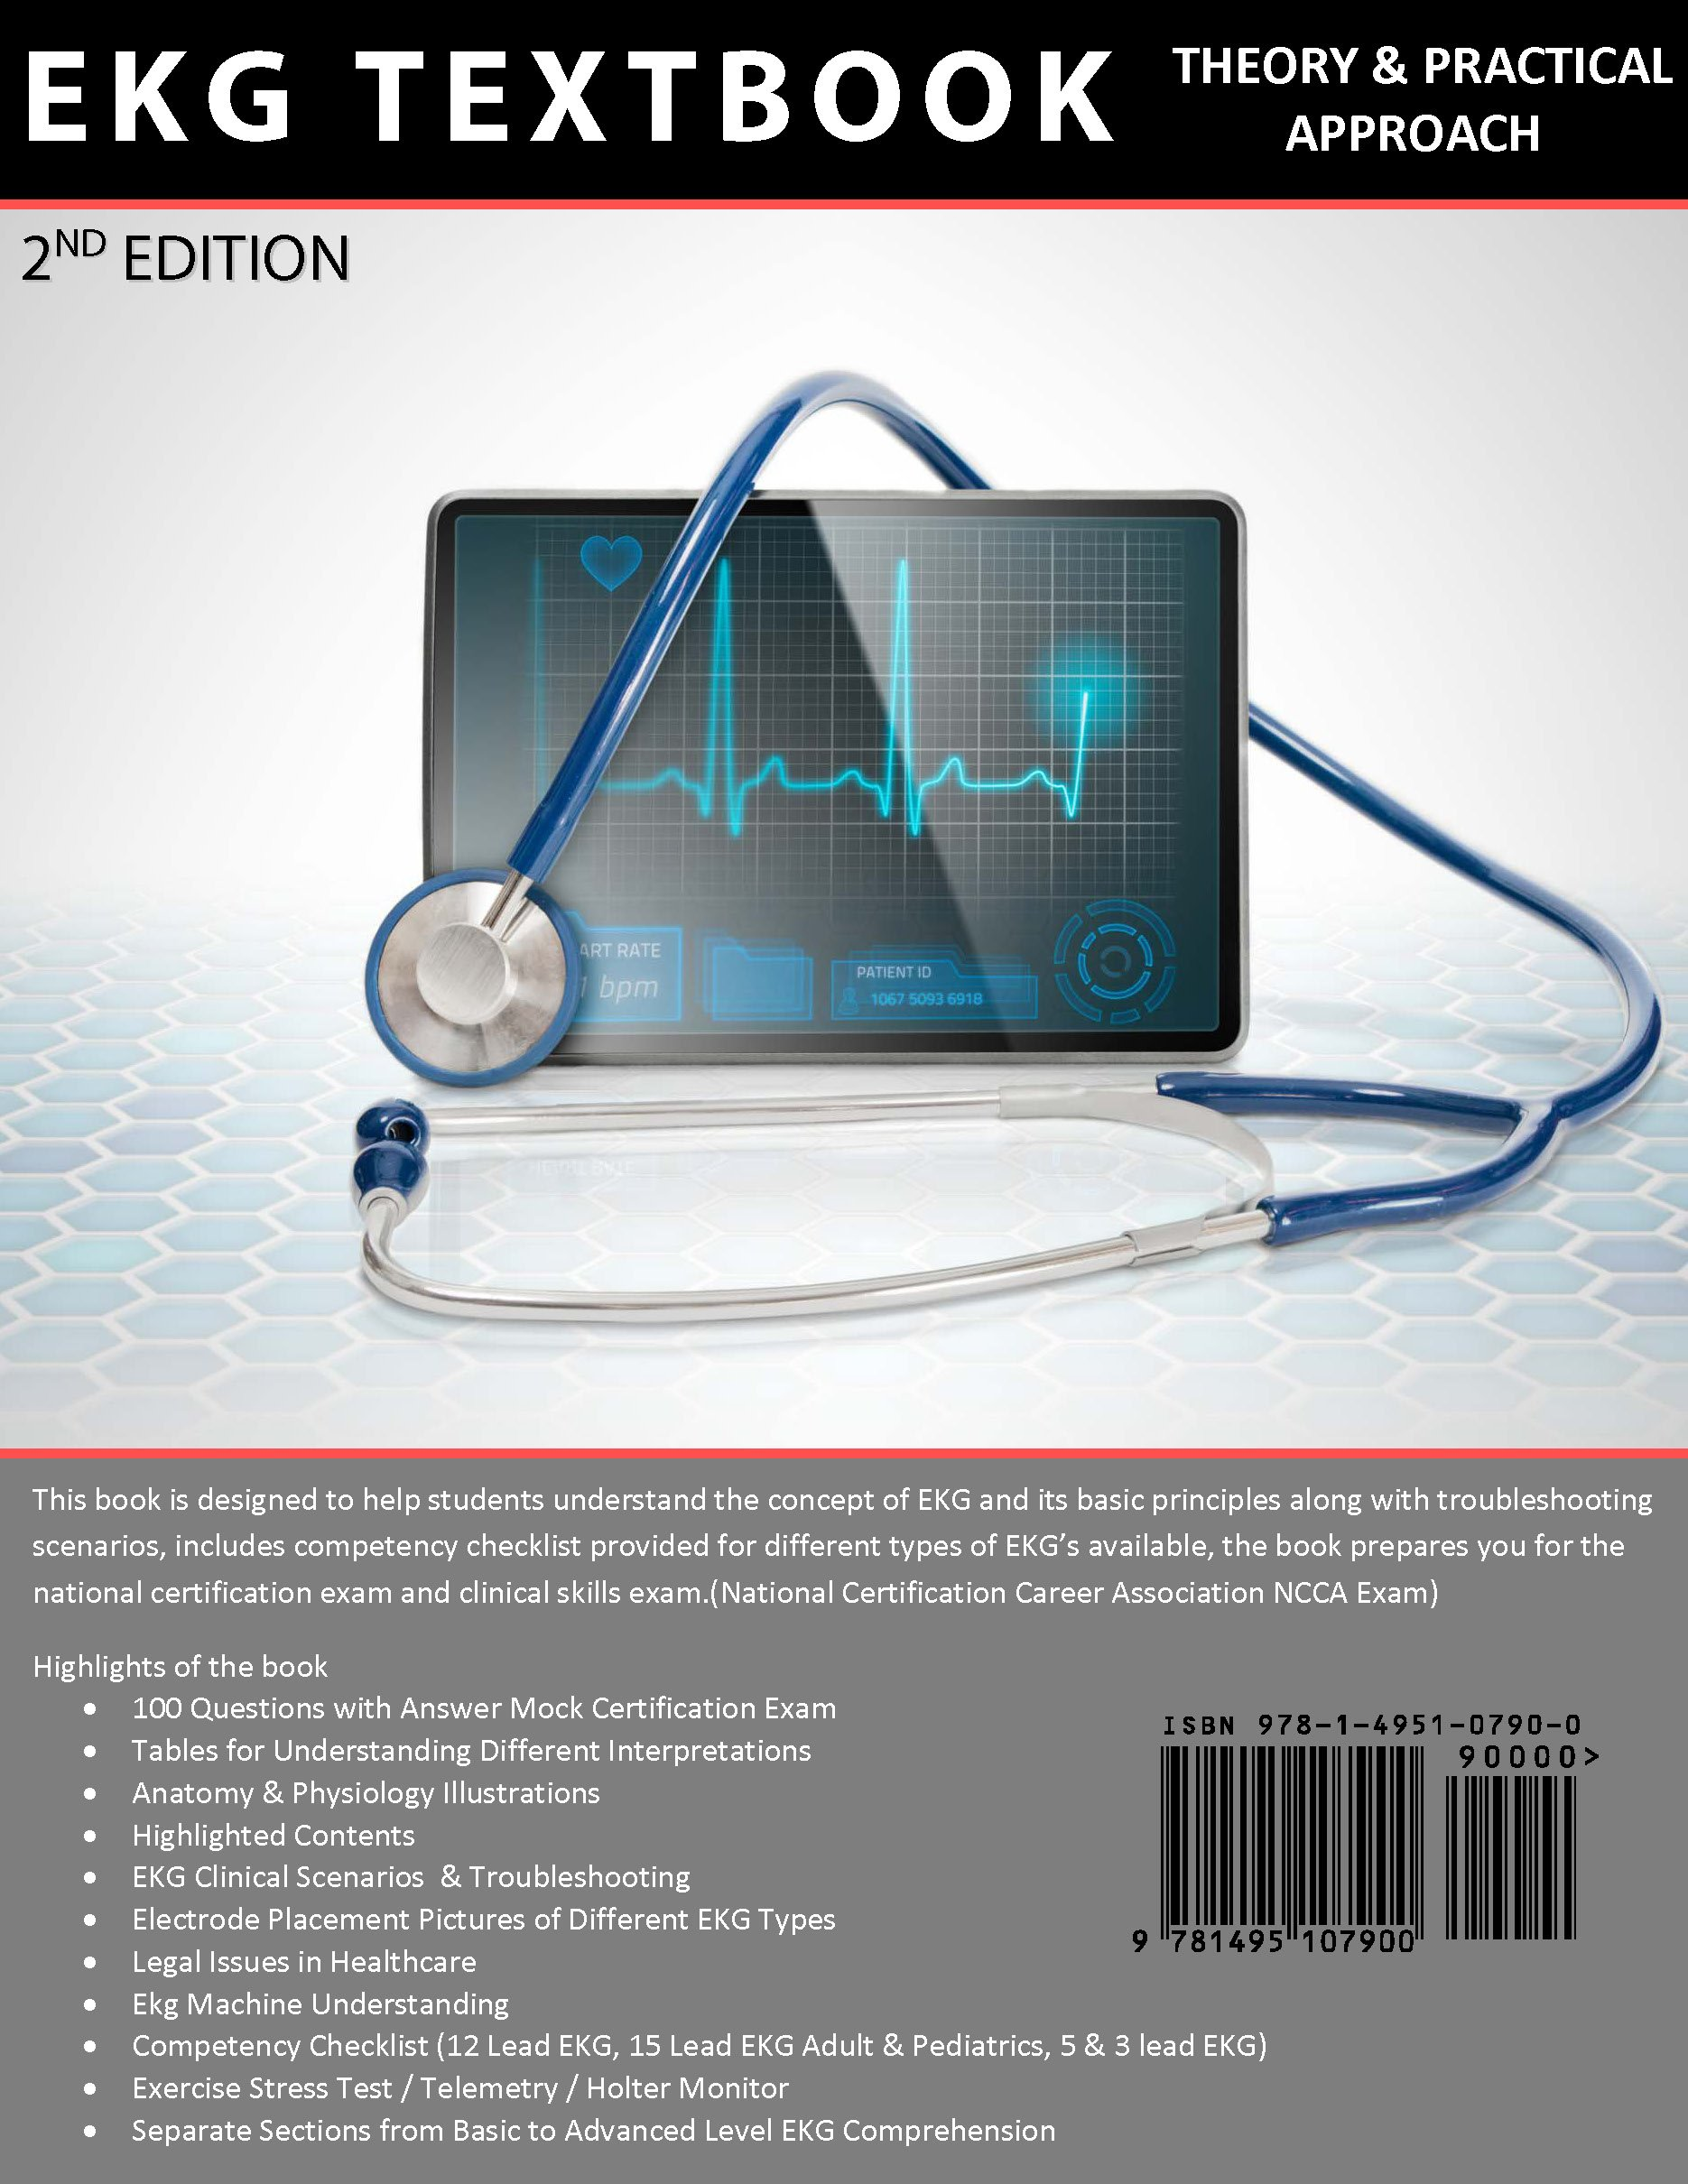 Ekg textbook theory and practical approach 2014 2nd edition ekg textbook theory and practical approach 2014 2nd edition sultan et al khan faisal khan md numerous students have shown a lack of understanding xflitez Choice Image